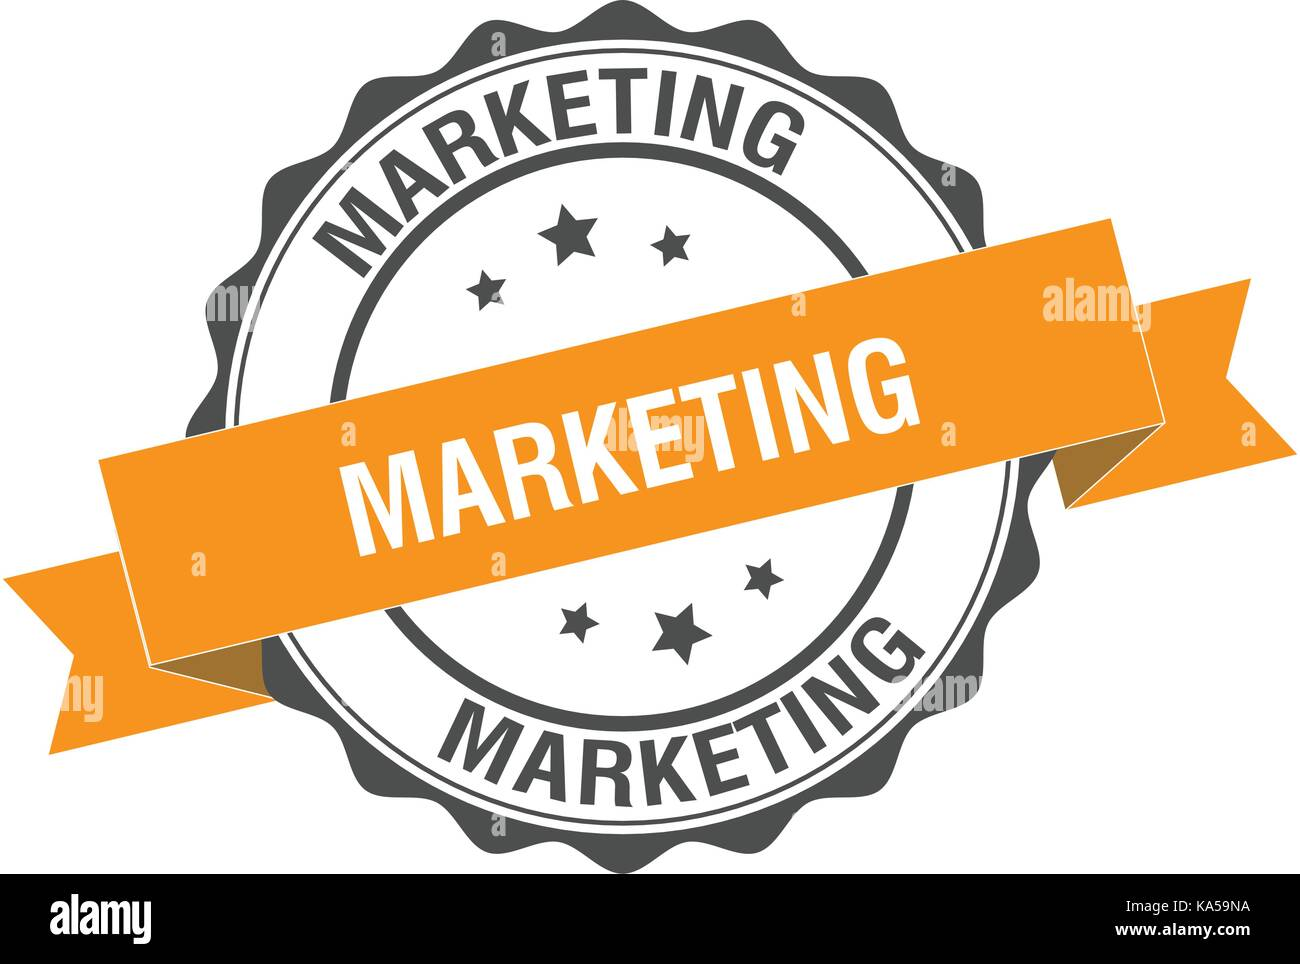 Marketing stamp illustration - Stock Image